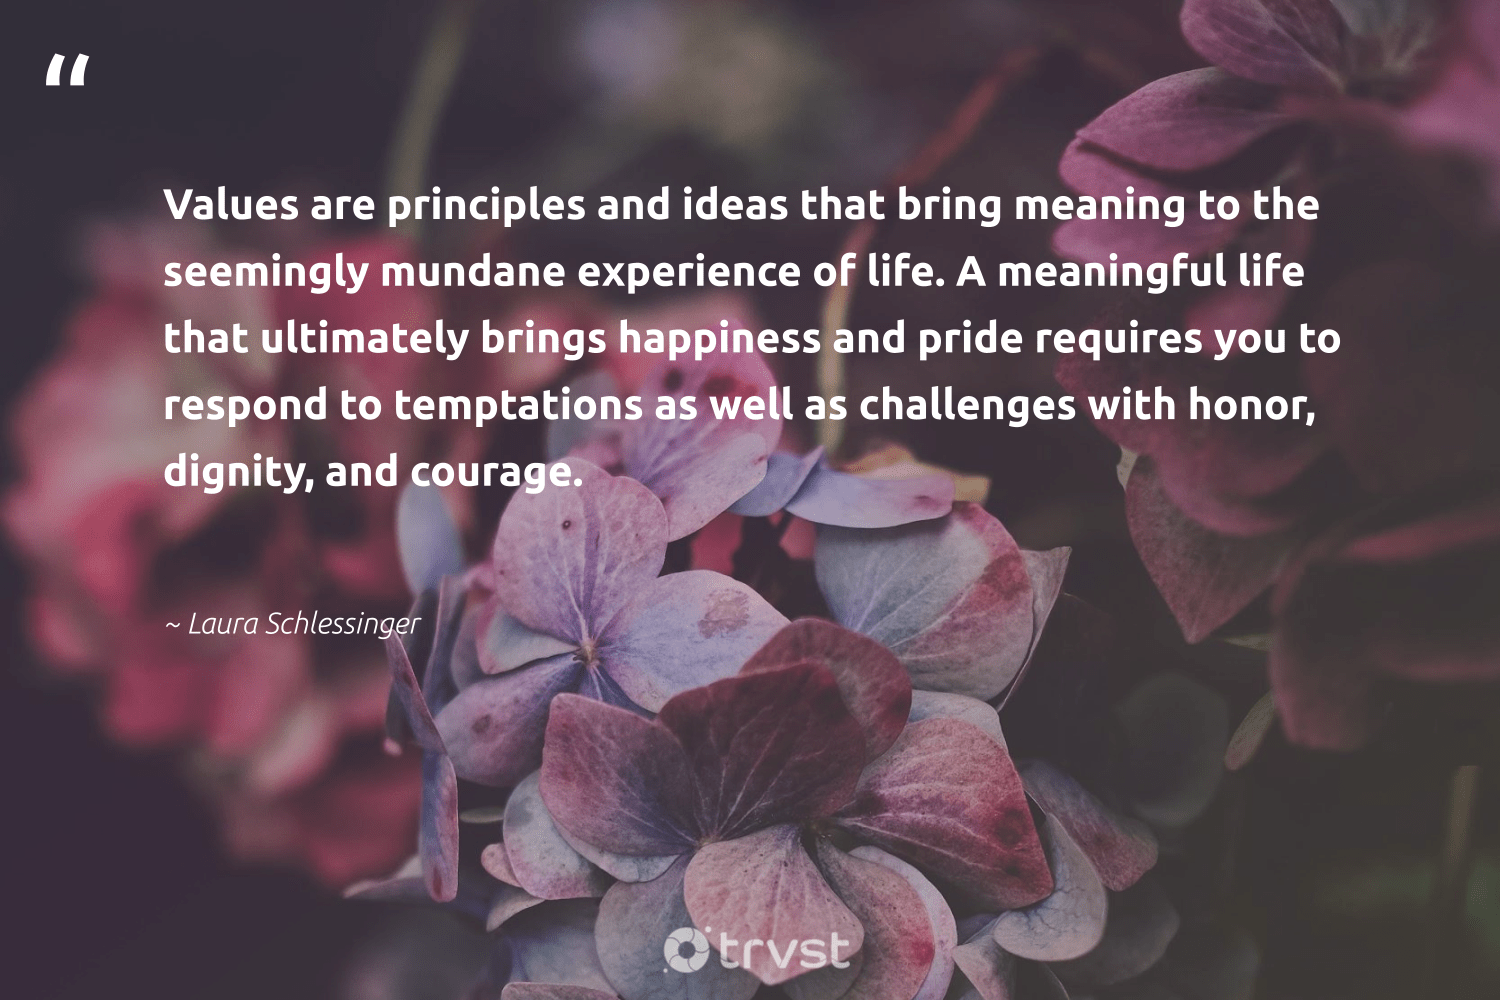 """""""Values are principles and ideas that bring meaning to the seemingly mundane experience of life. A meaningful life that ultimately brings happiness and pride requires you to respond to temptations as well as challenges with honor, dignity, and courage.""""  - Laura Schlessinger #trvst #quotes #pride #happiness #changemakers #beinspired #togetherwecan #planetearthfirst #begreat #dotherightthing #nevergiveup #impact"""